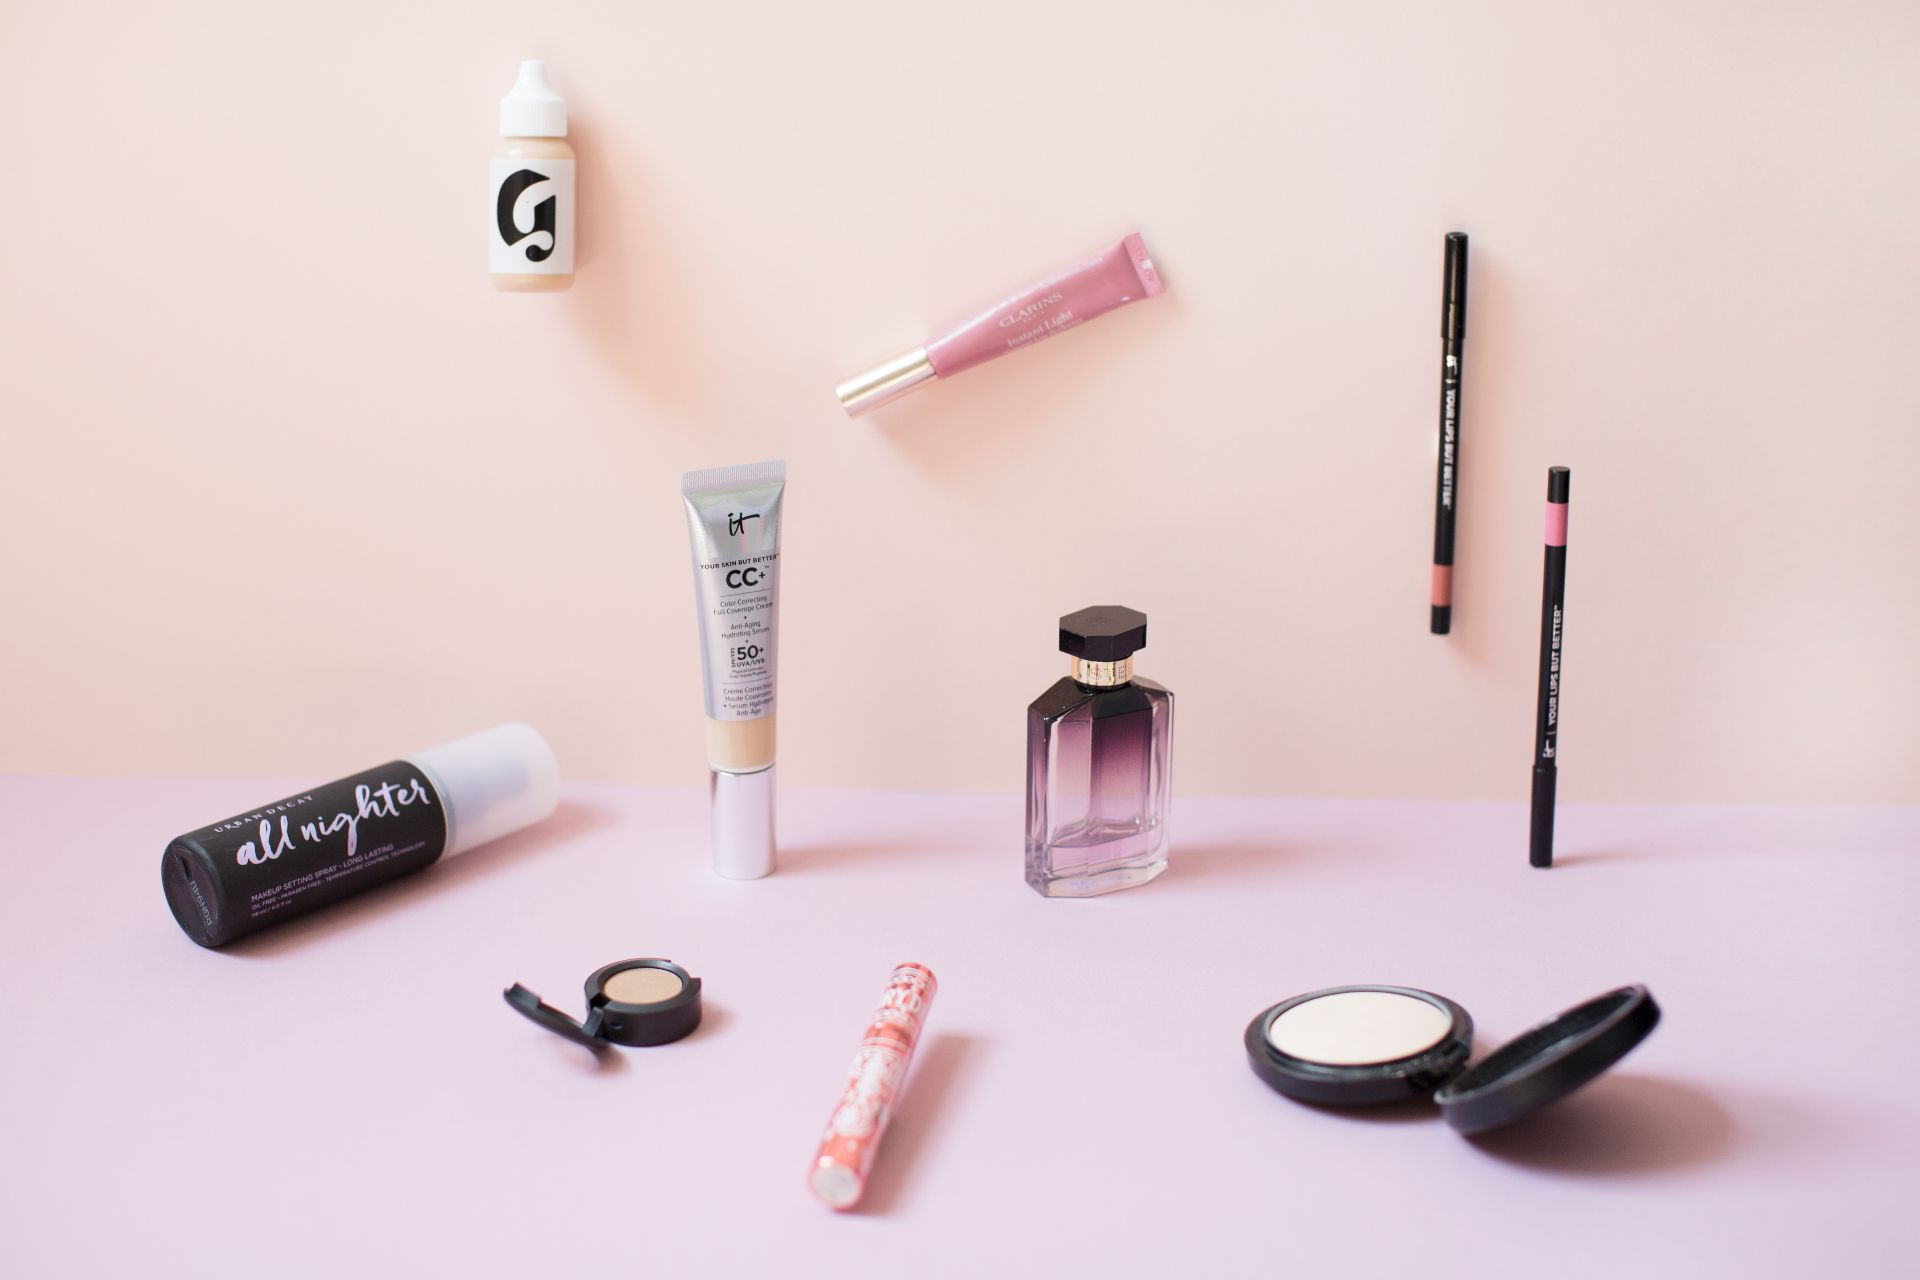 theannaedit-sumer-makeup-favourites-glossier-stella-mccartney-urban-decay-sweatproof-june-2017-1